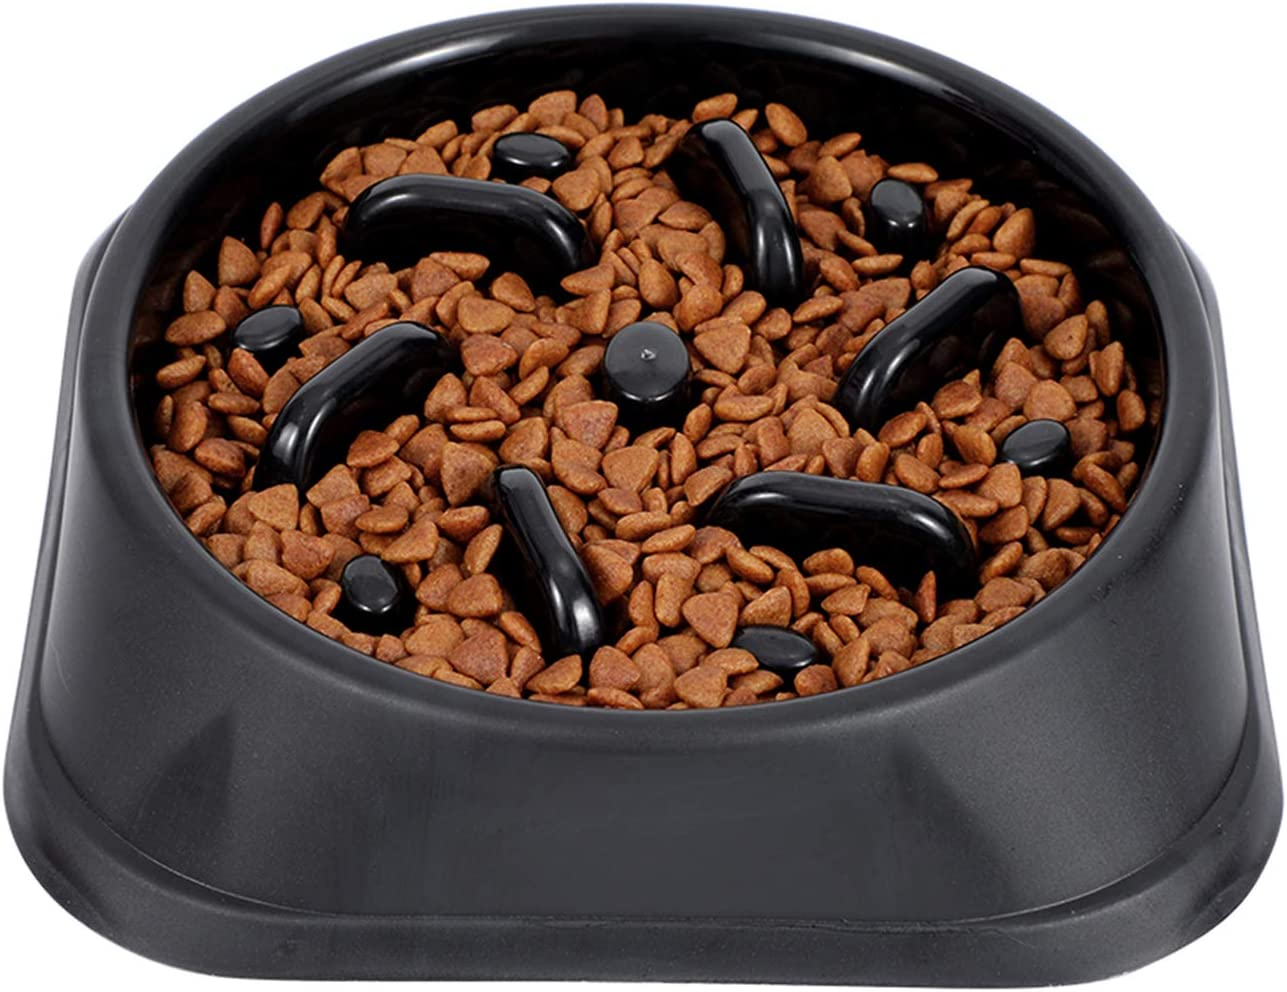 Dog Bowl Slow Eating Feeder, No Chocking Anti-Gulp Slower Bowl, Stop Bloat for Dogs, Reduce Slip Puzzle Bowl for Small Puppy Medium Dogs, Eco-Friendly Non-Toxic Maze Bowl for Fast Eater (D-Black)